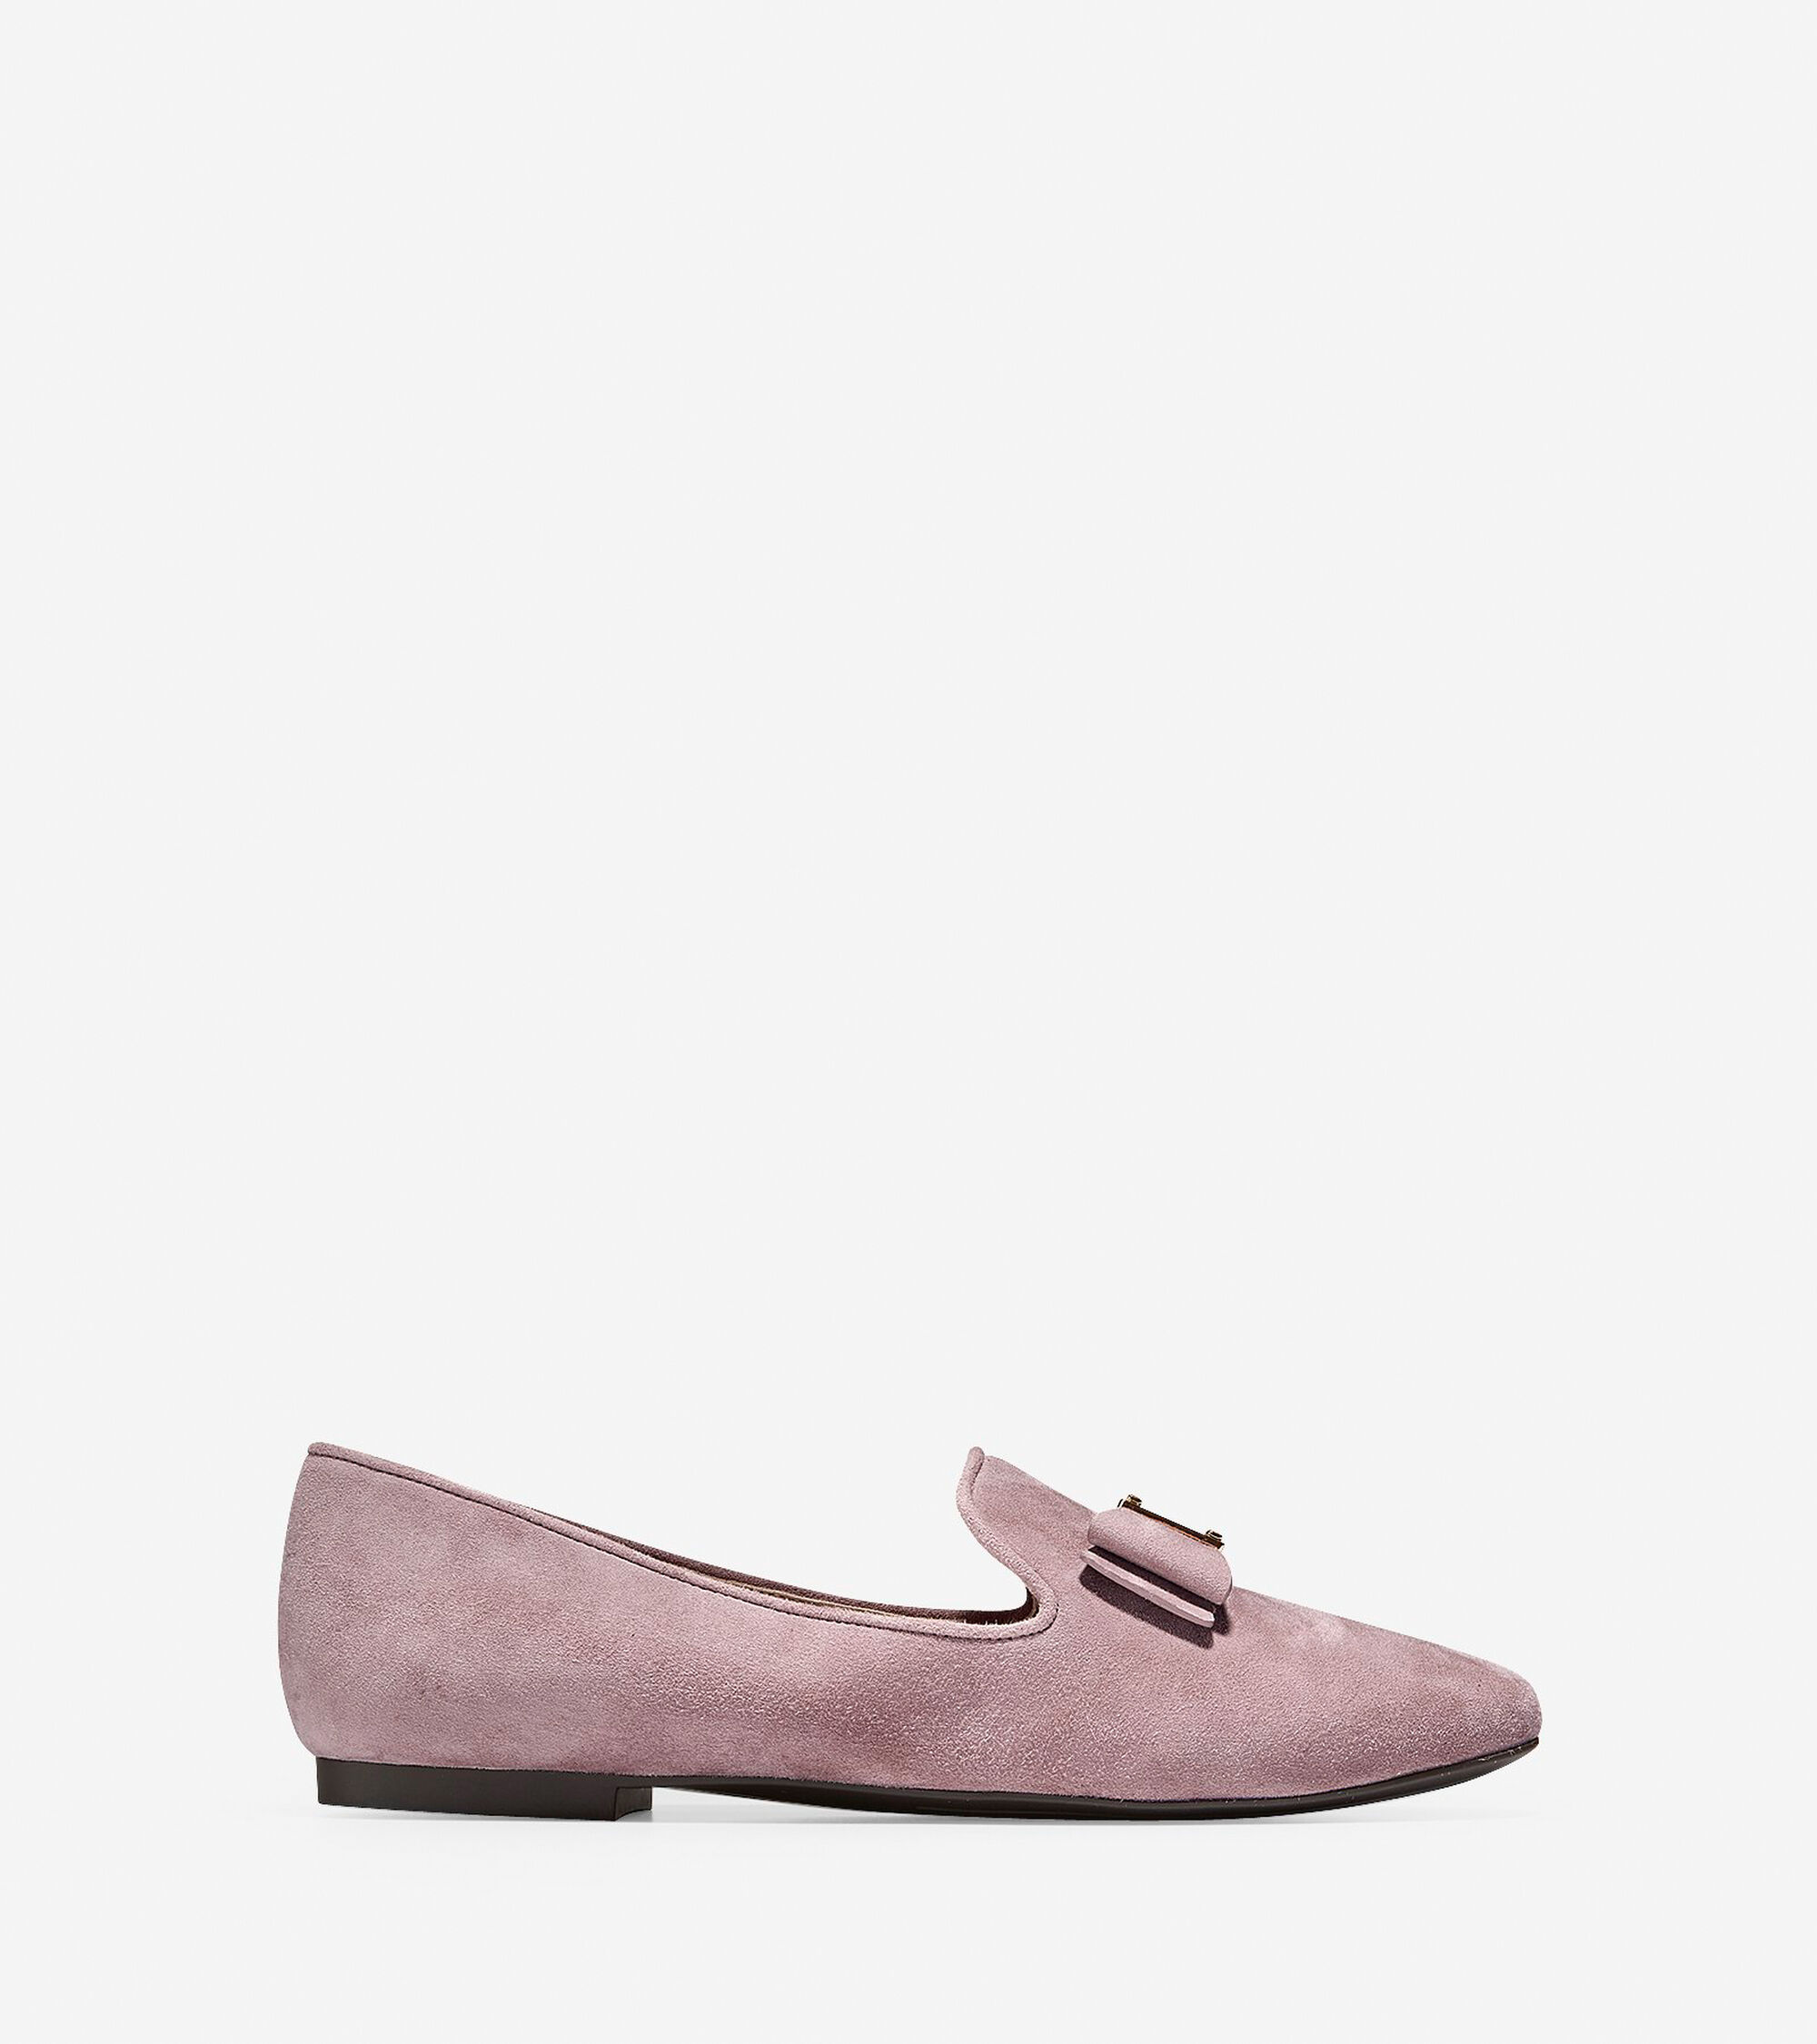 a47cdb456dc Women s Tali Bow Loafers in Twilight Mauve Suede